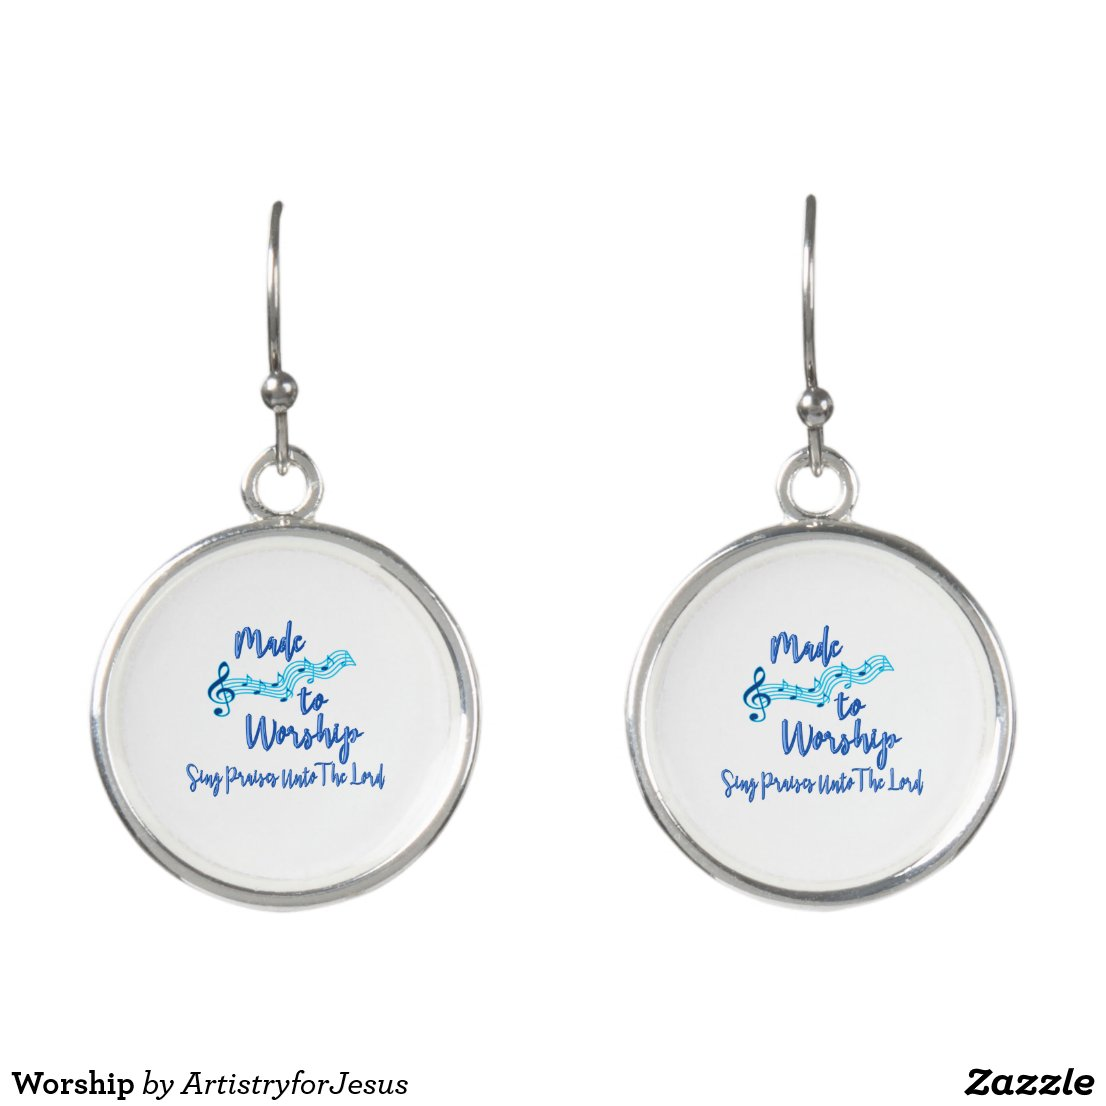 Worship Earrings